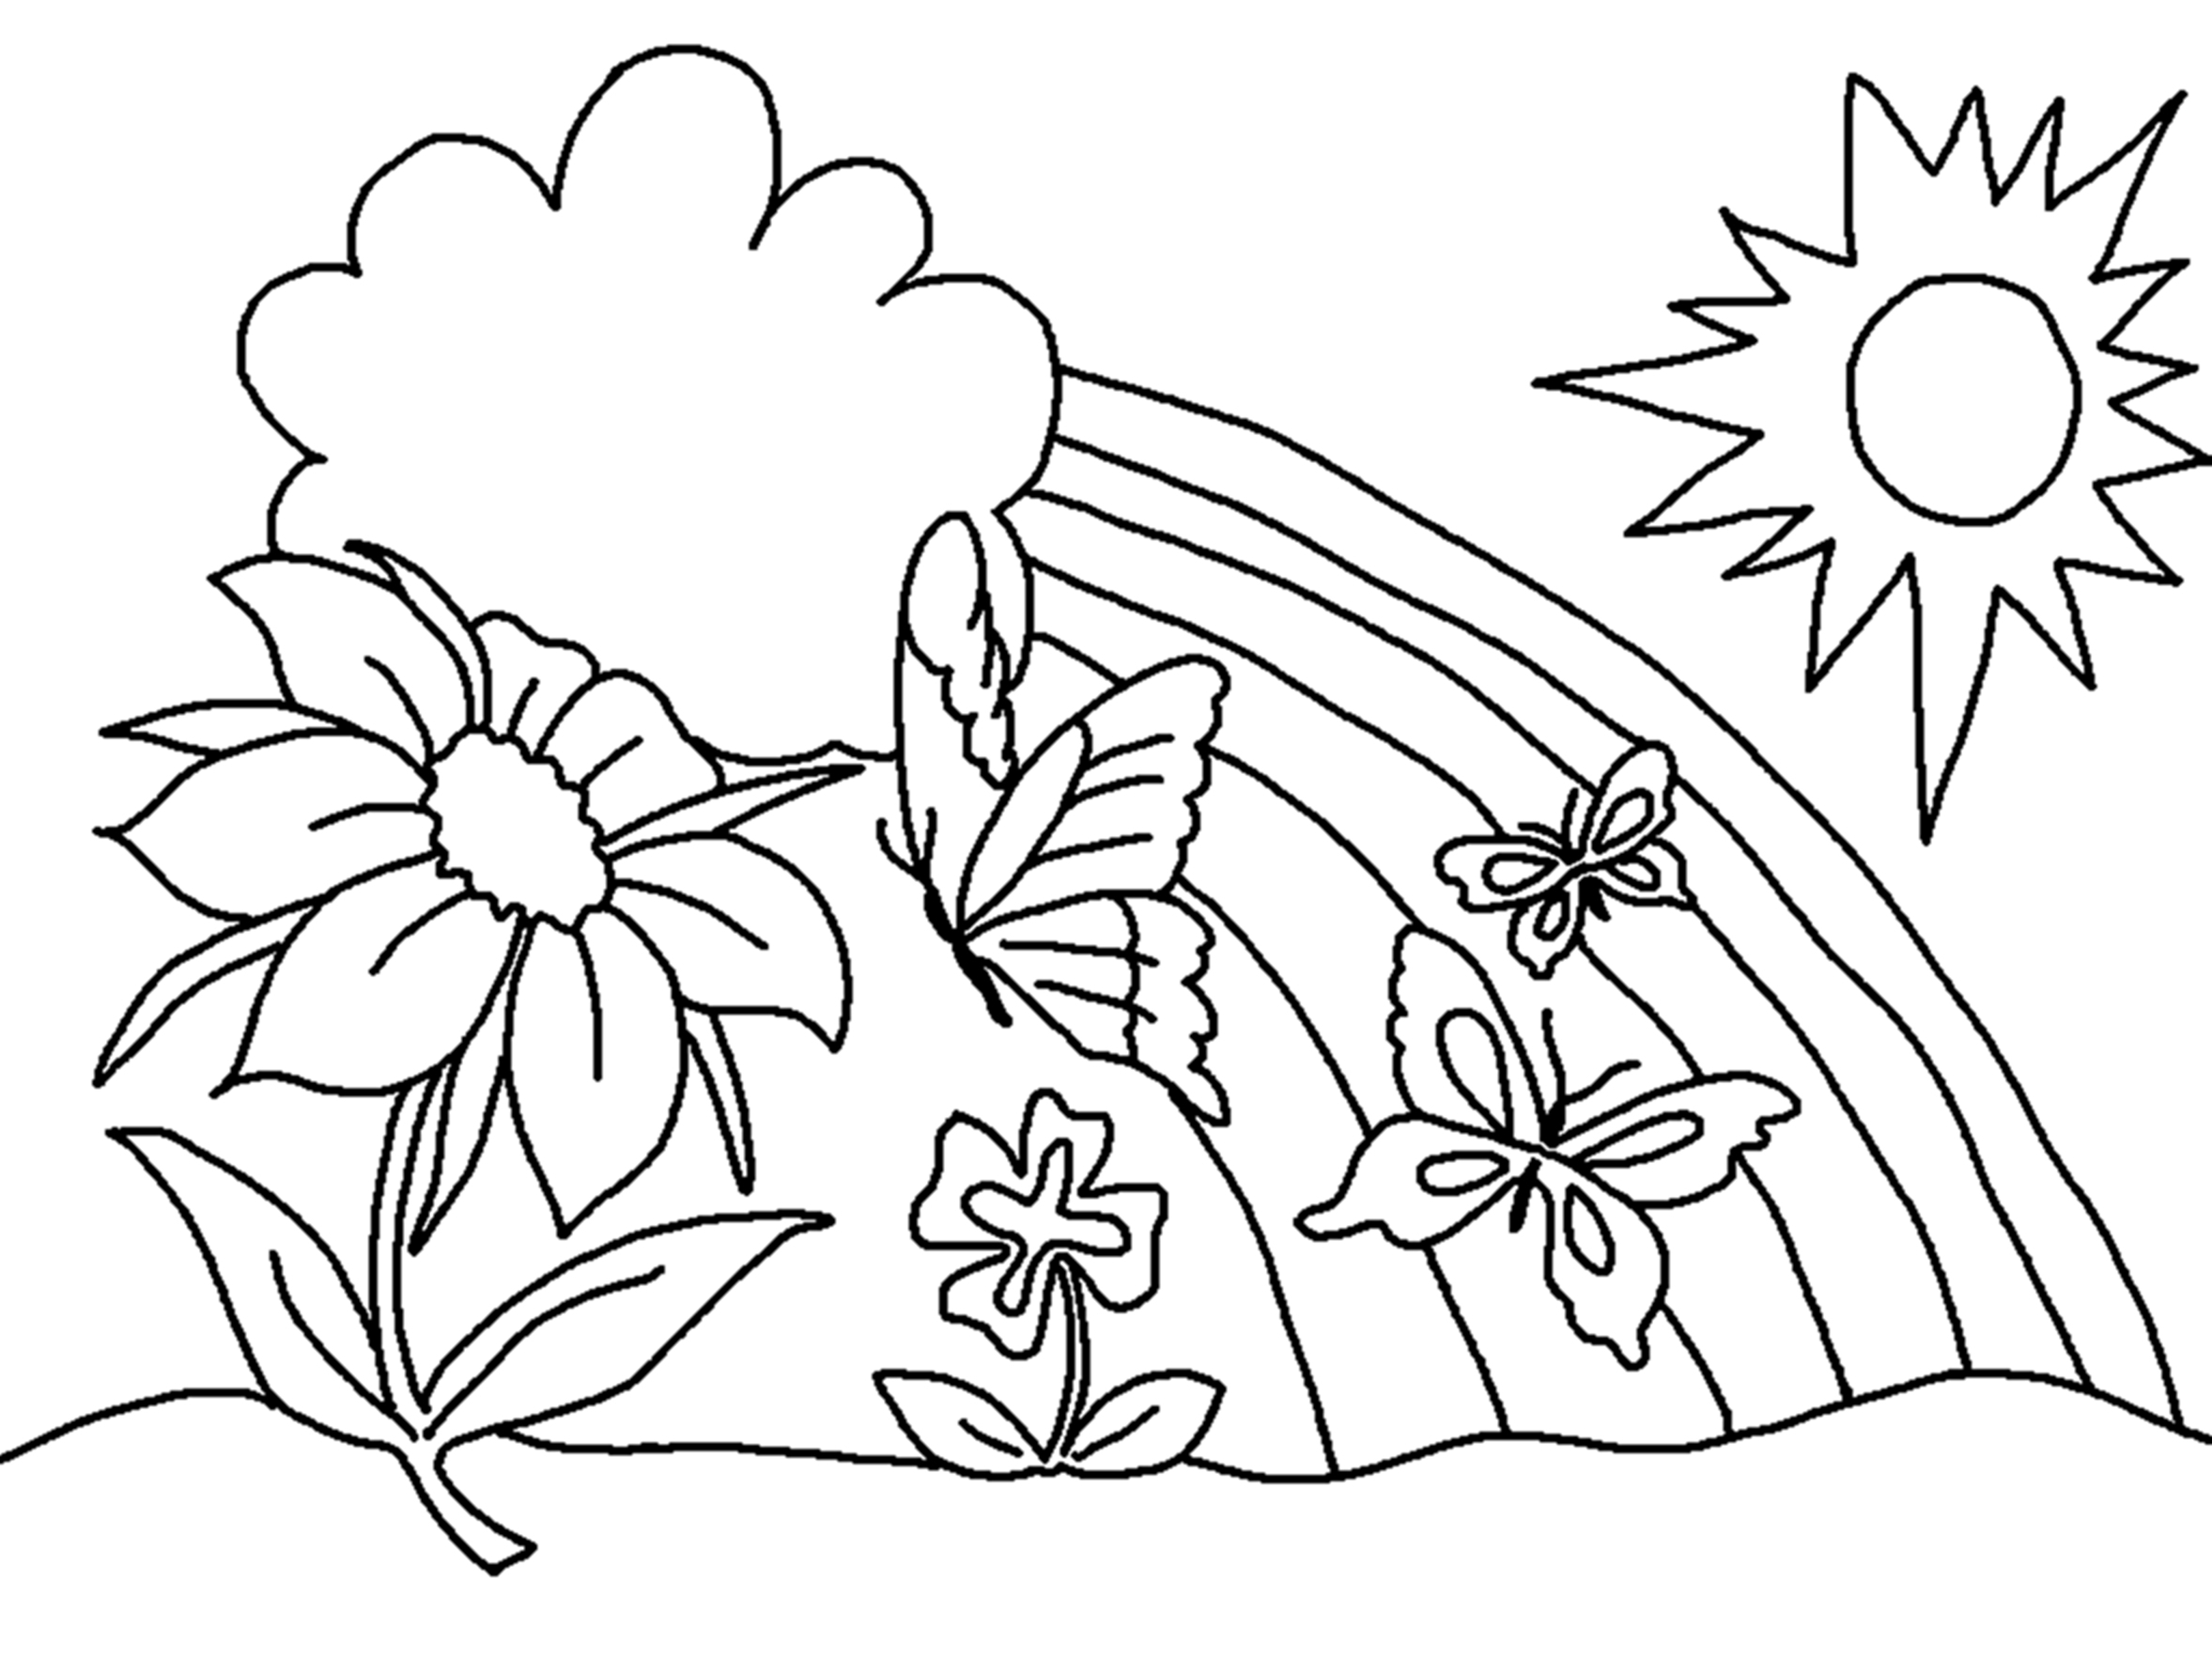 Poochyena Coloring Pages Archive With Tag Free Printable Pictures Of Flowers To Color